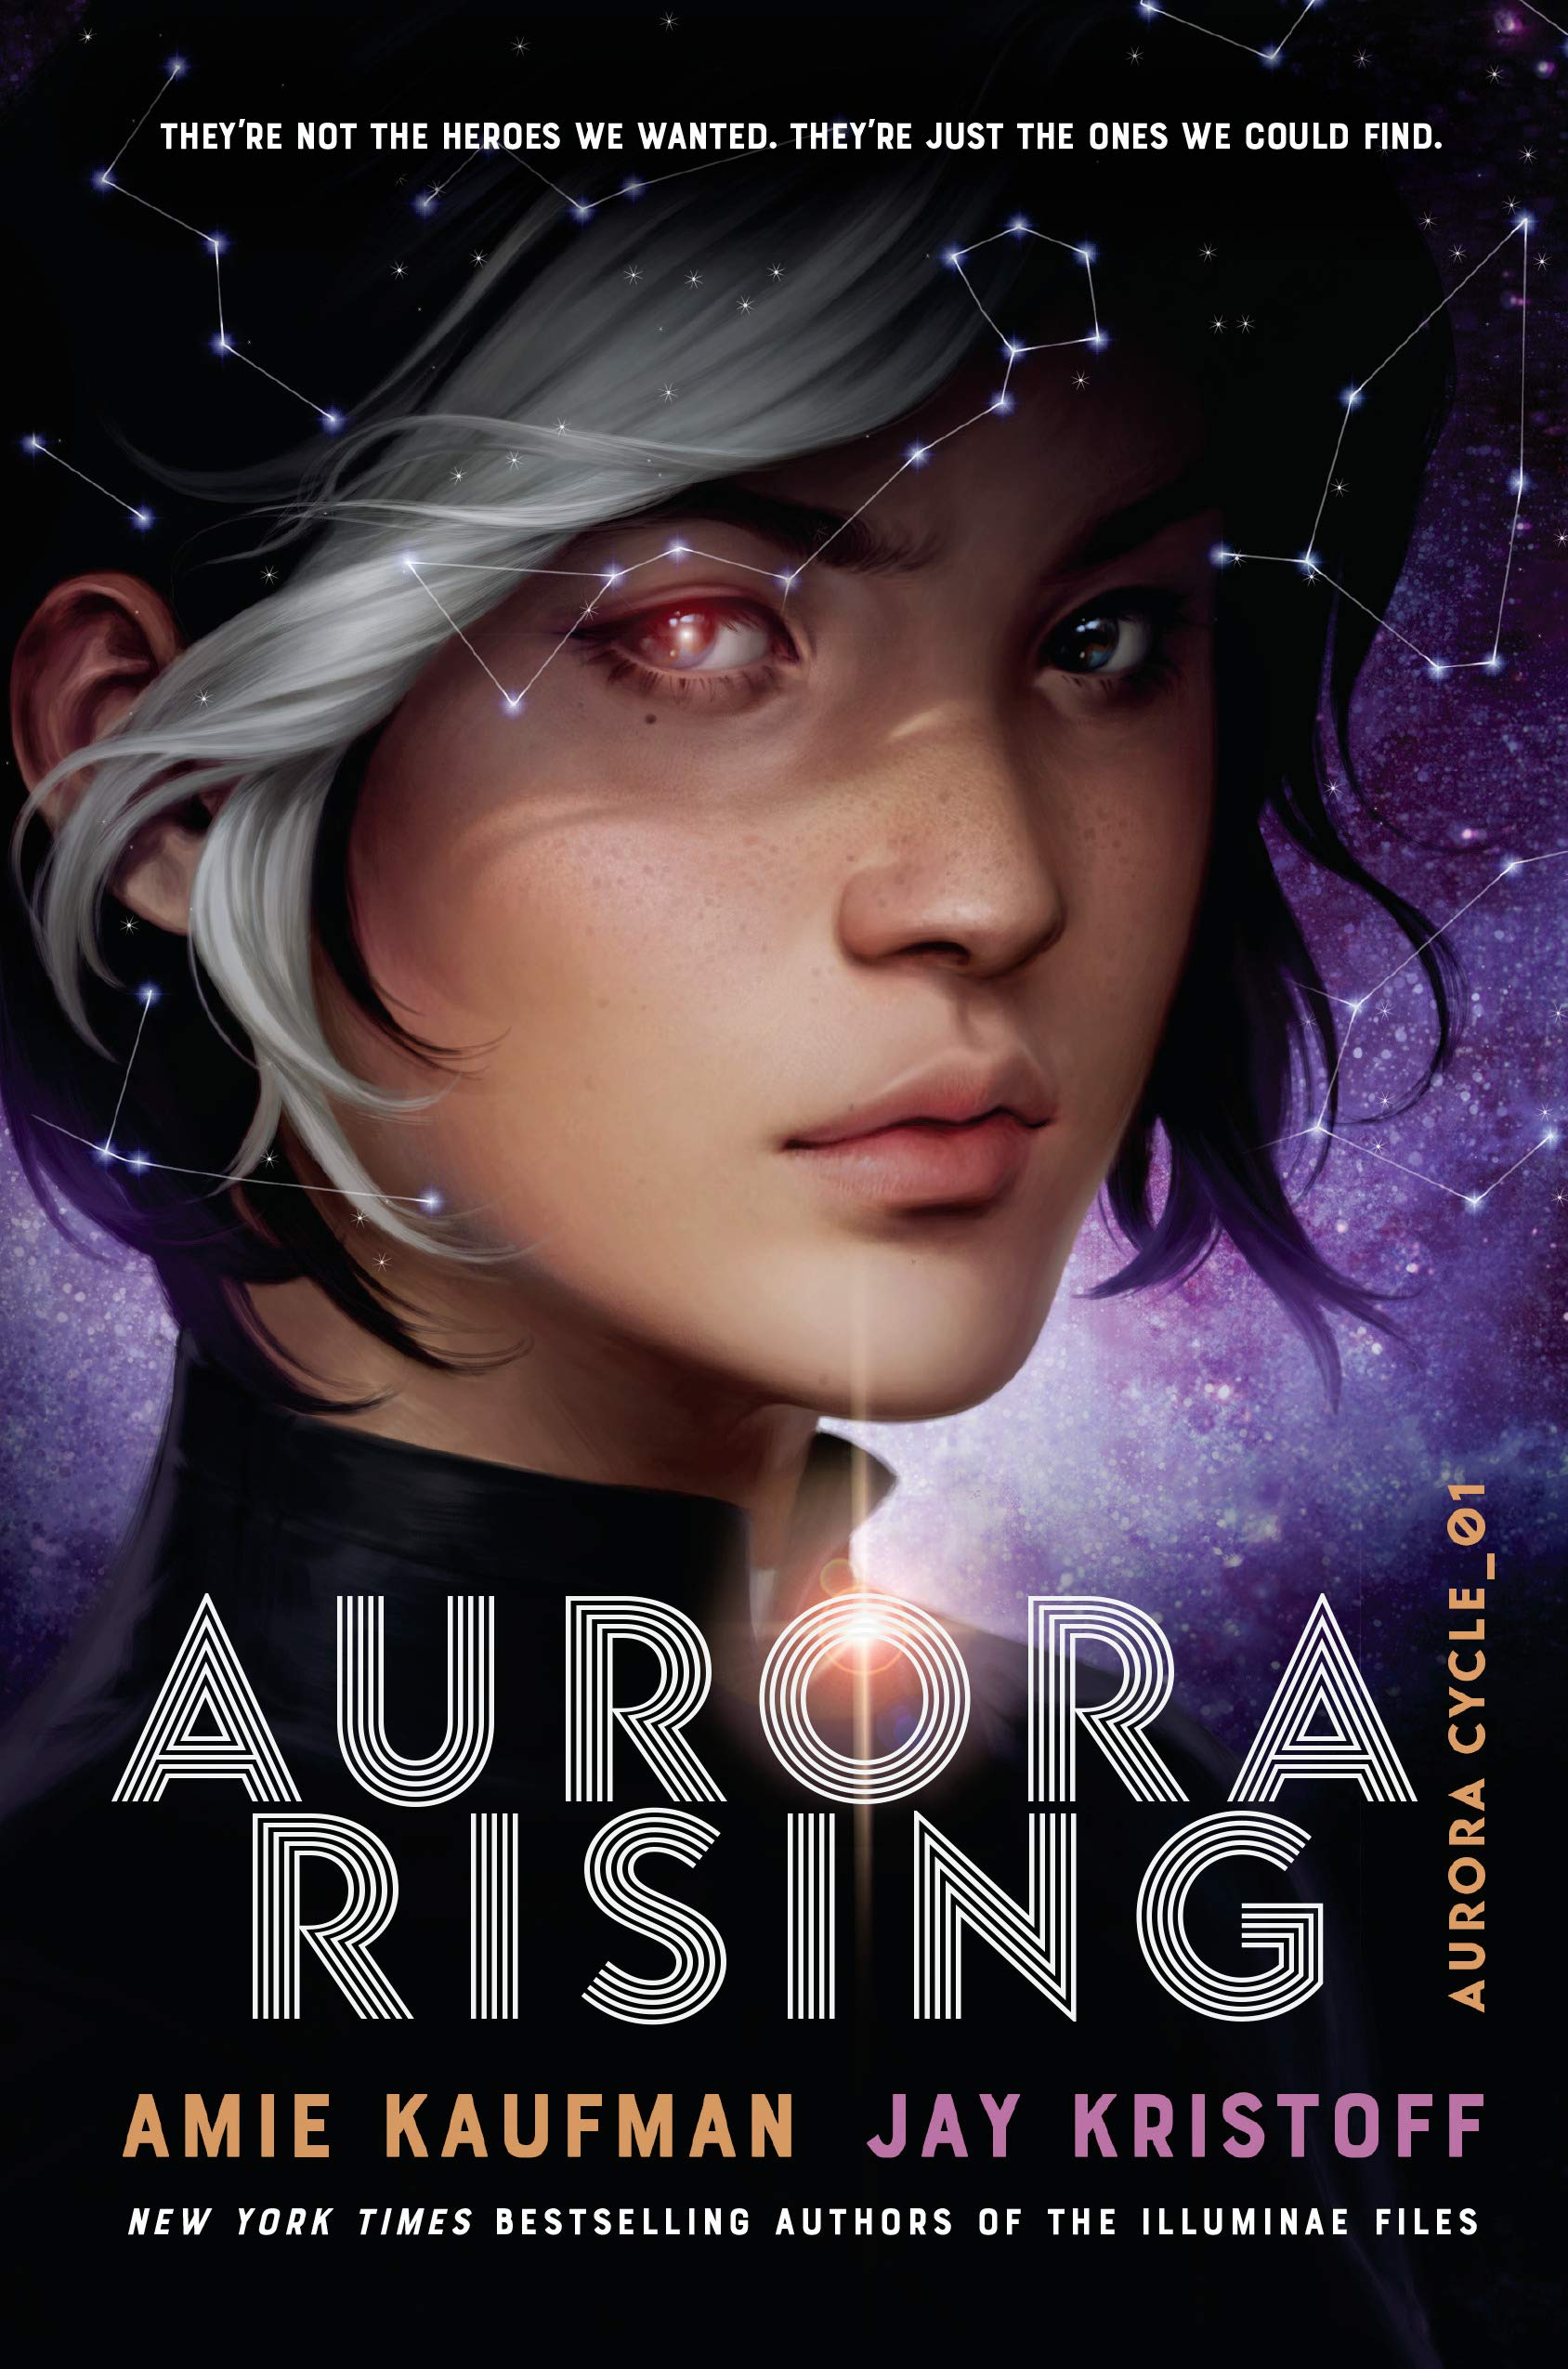 Book Reviews by KPL Teens: Amie Kaufman and Jay Kristoff's Aurora Rising